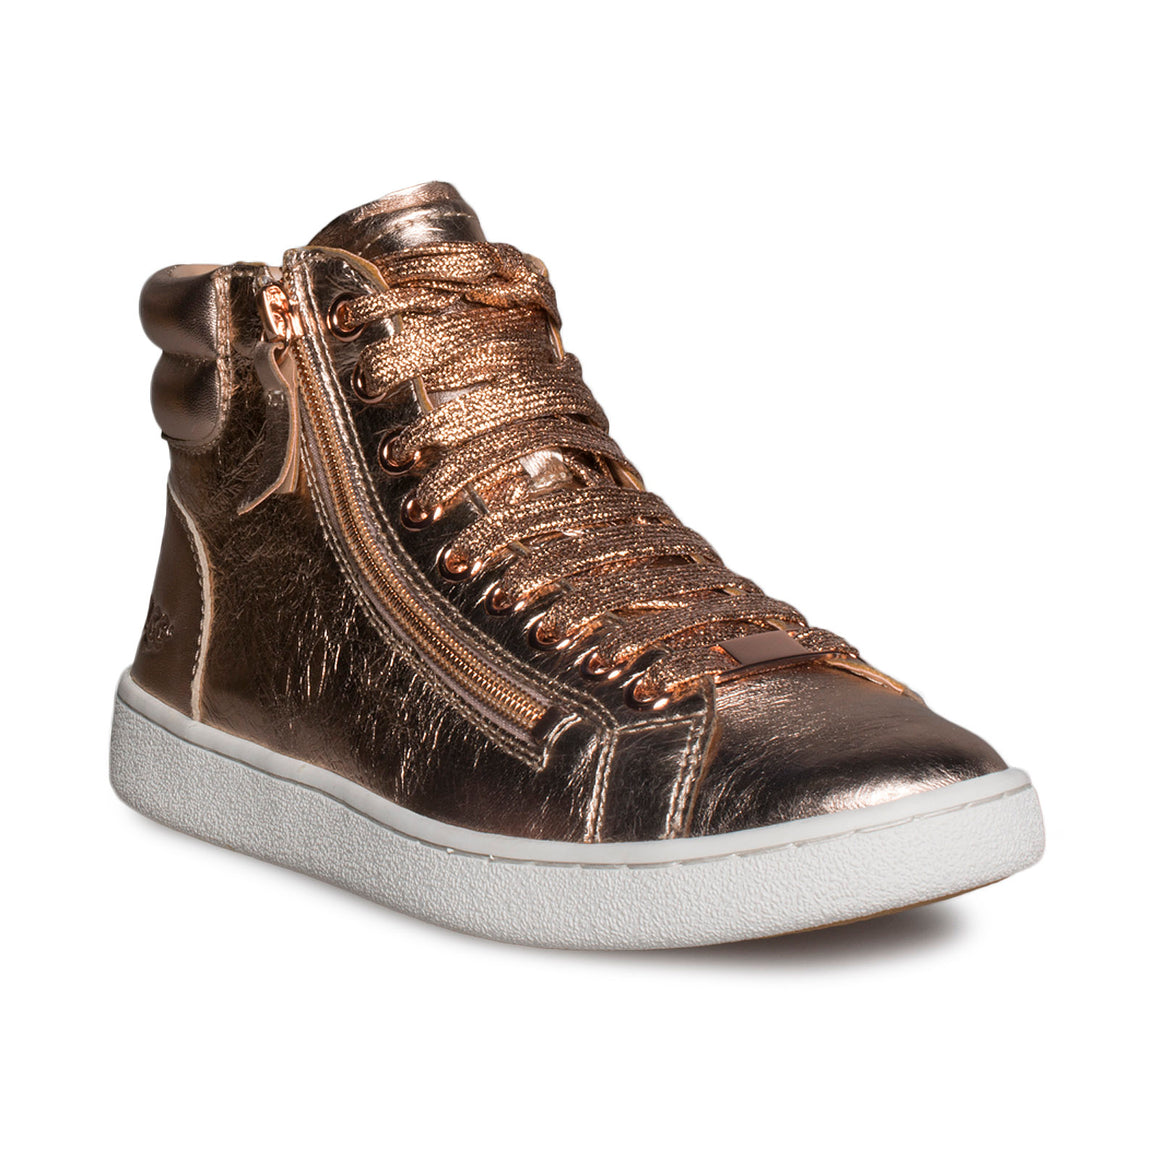 UGG Olive Metallic Red Gold Sneakers - Women's